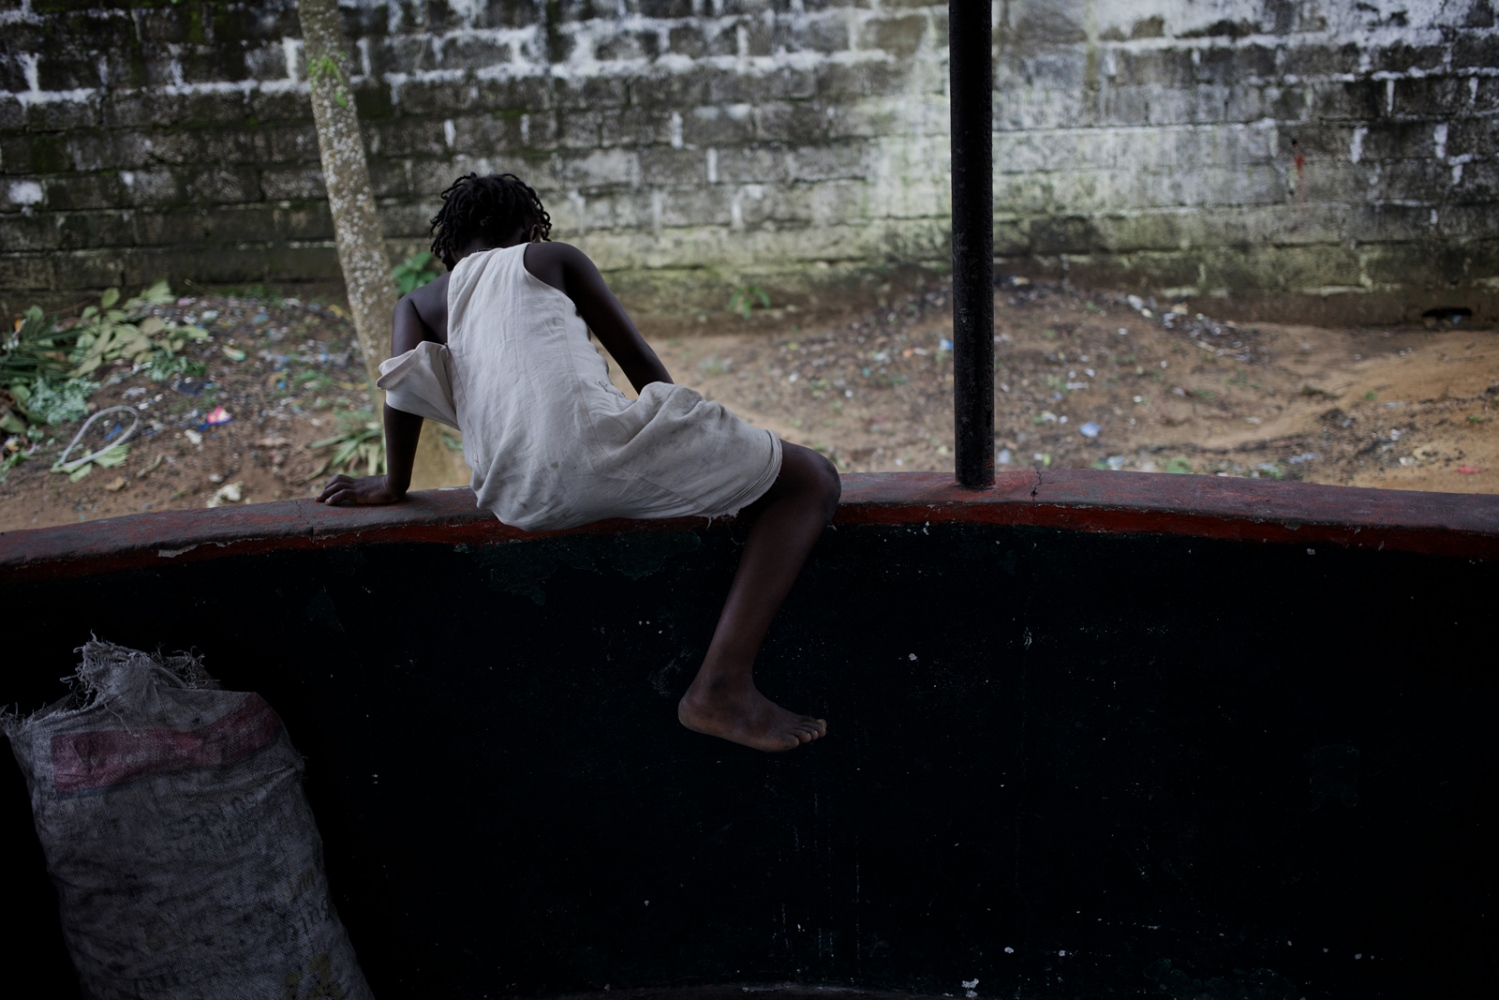 Monrovia, Liberia. July 2013. A young girl jumps over the fence dividing kitchen area from rest of the compound of the safe house for survivors of sexual and gender-based violence.